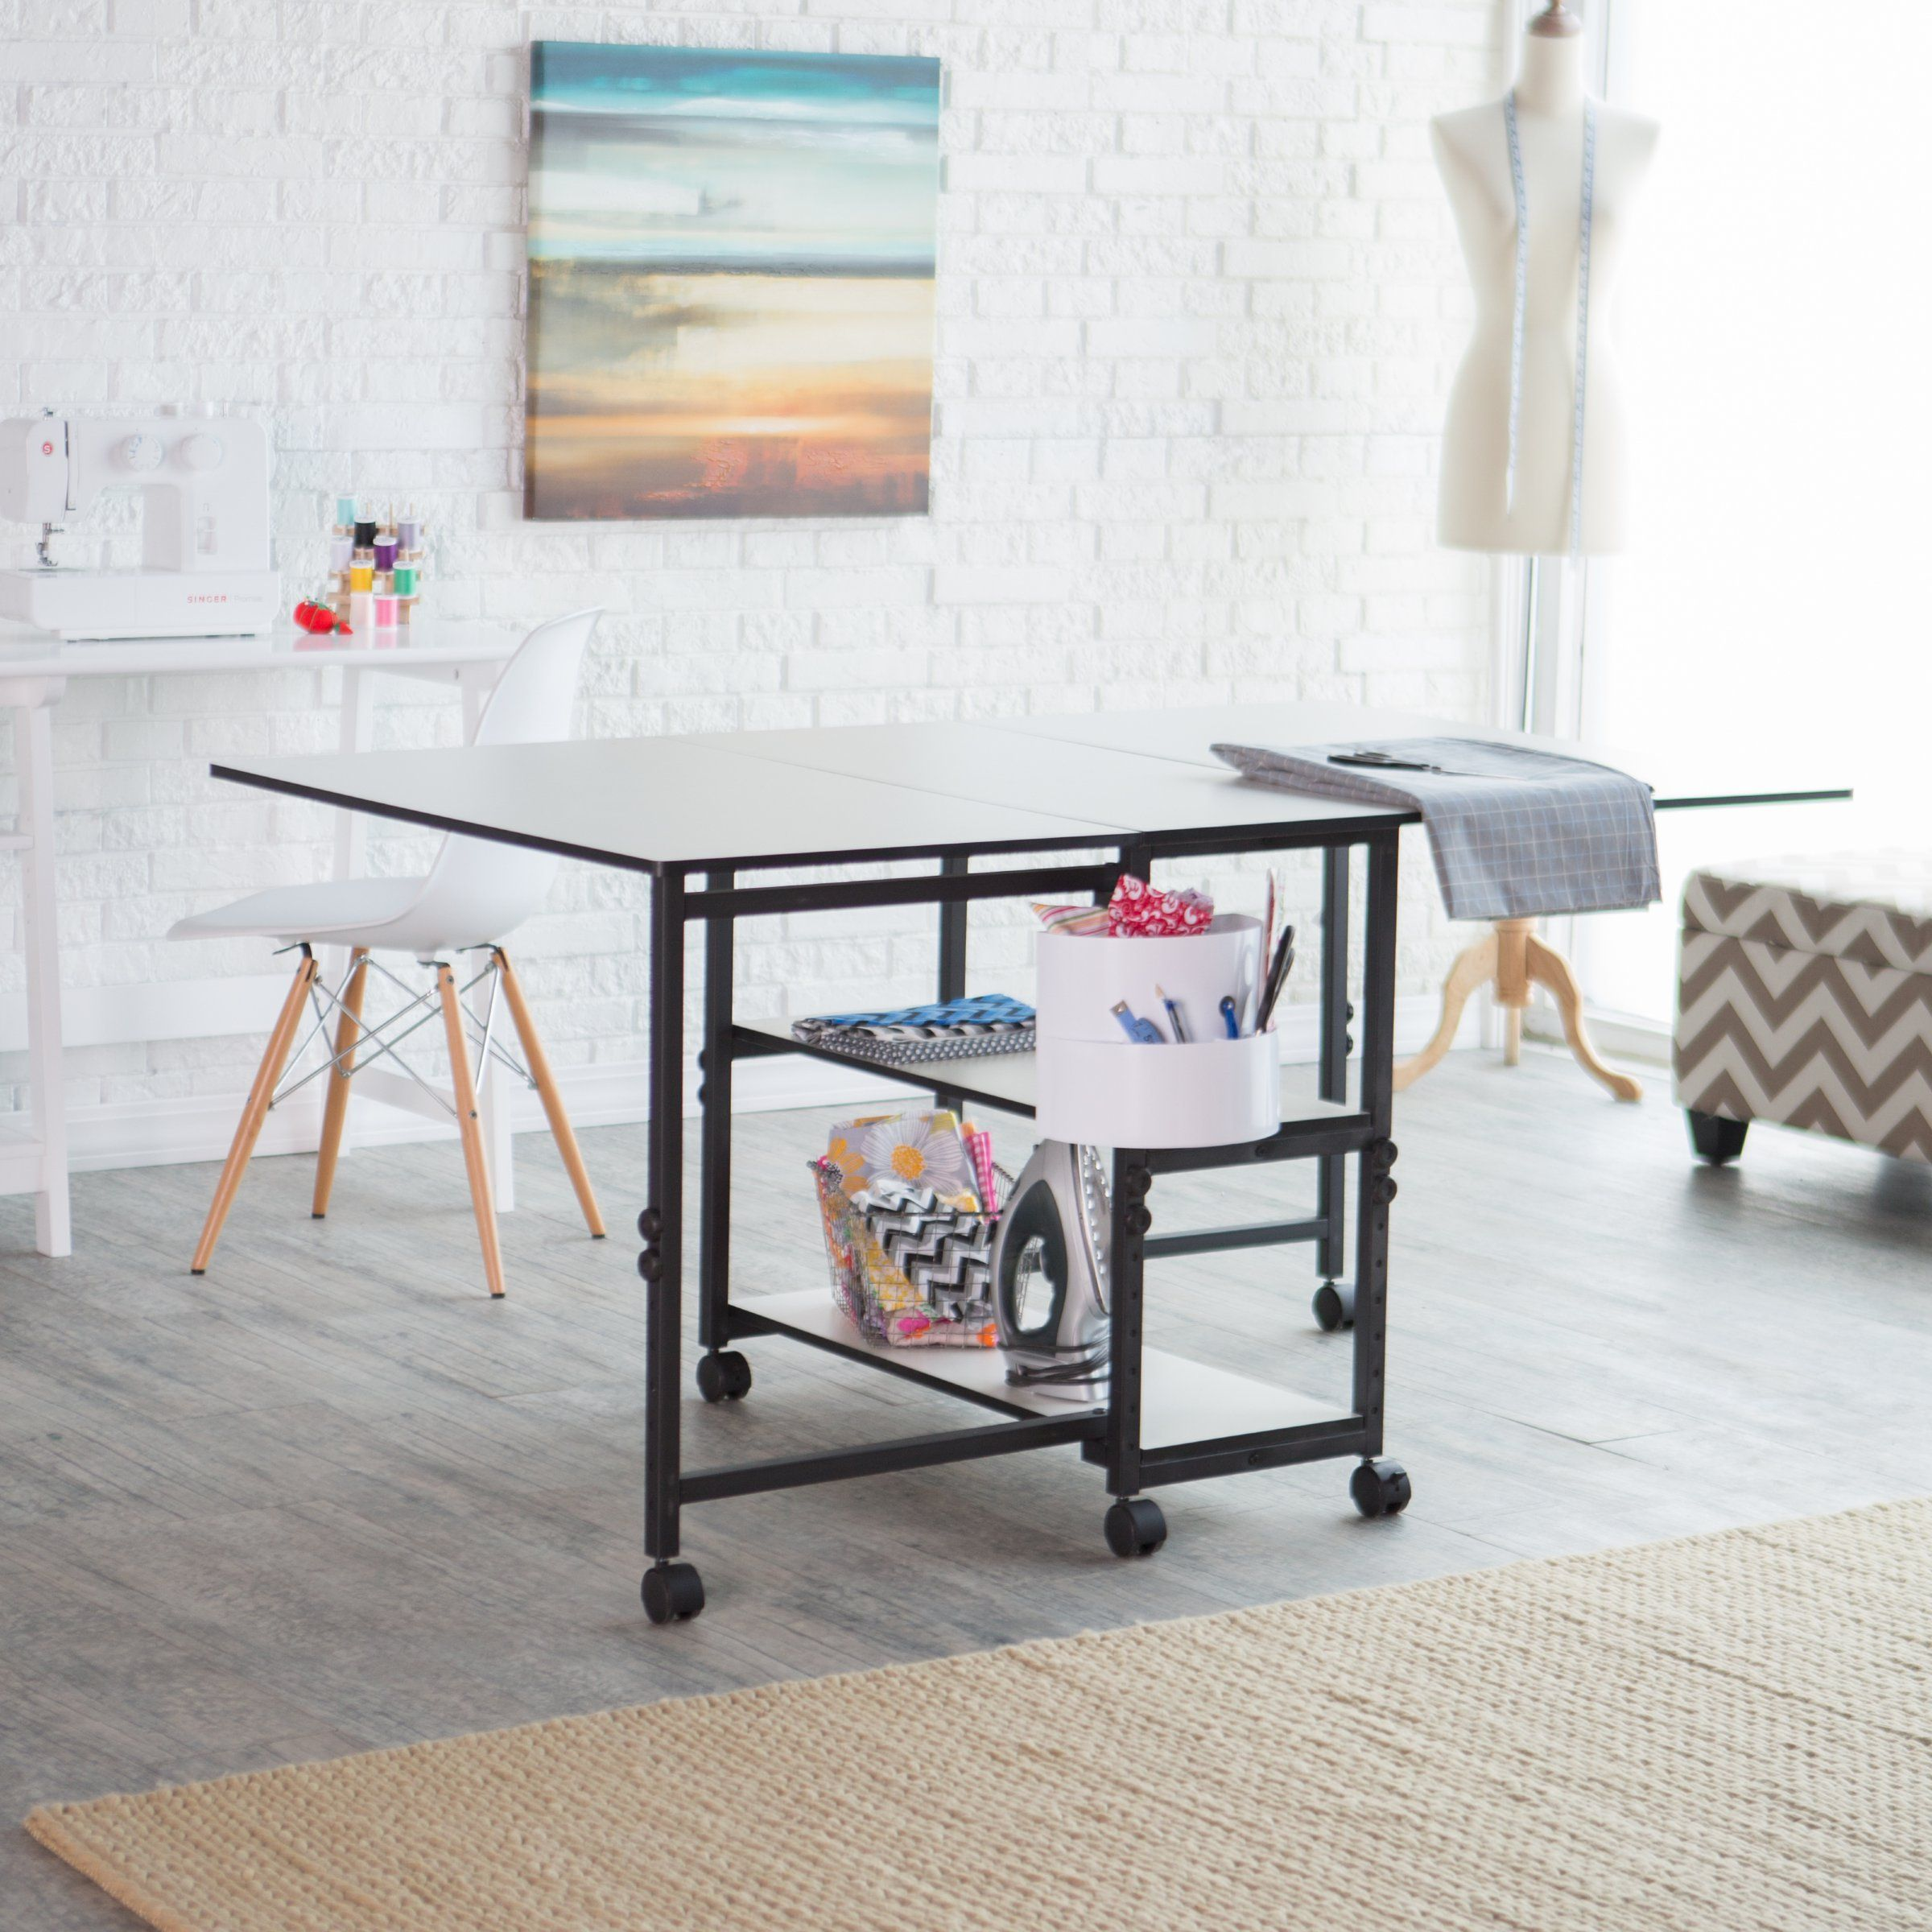 14++ Adjustable height craft table ideas in 2021